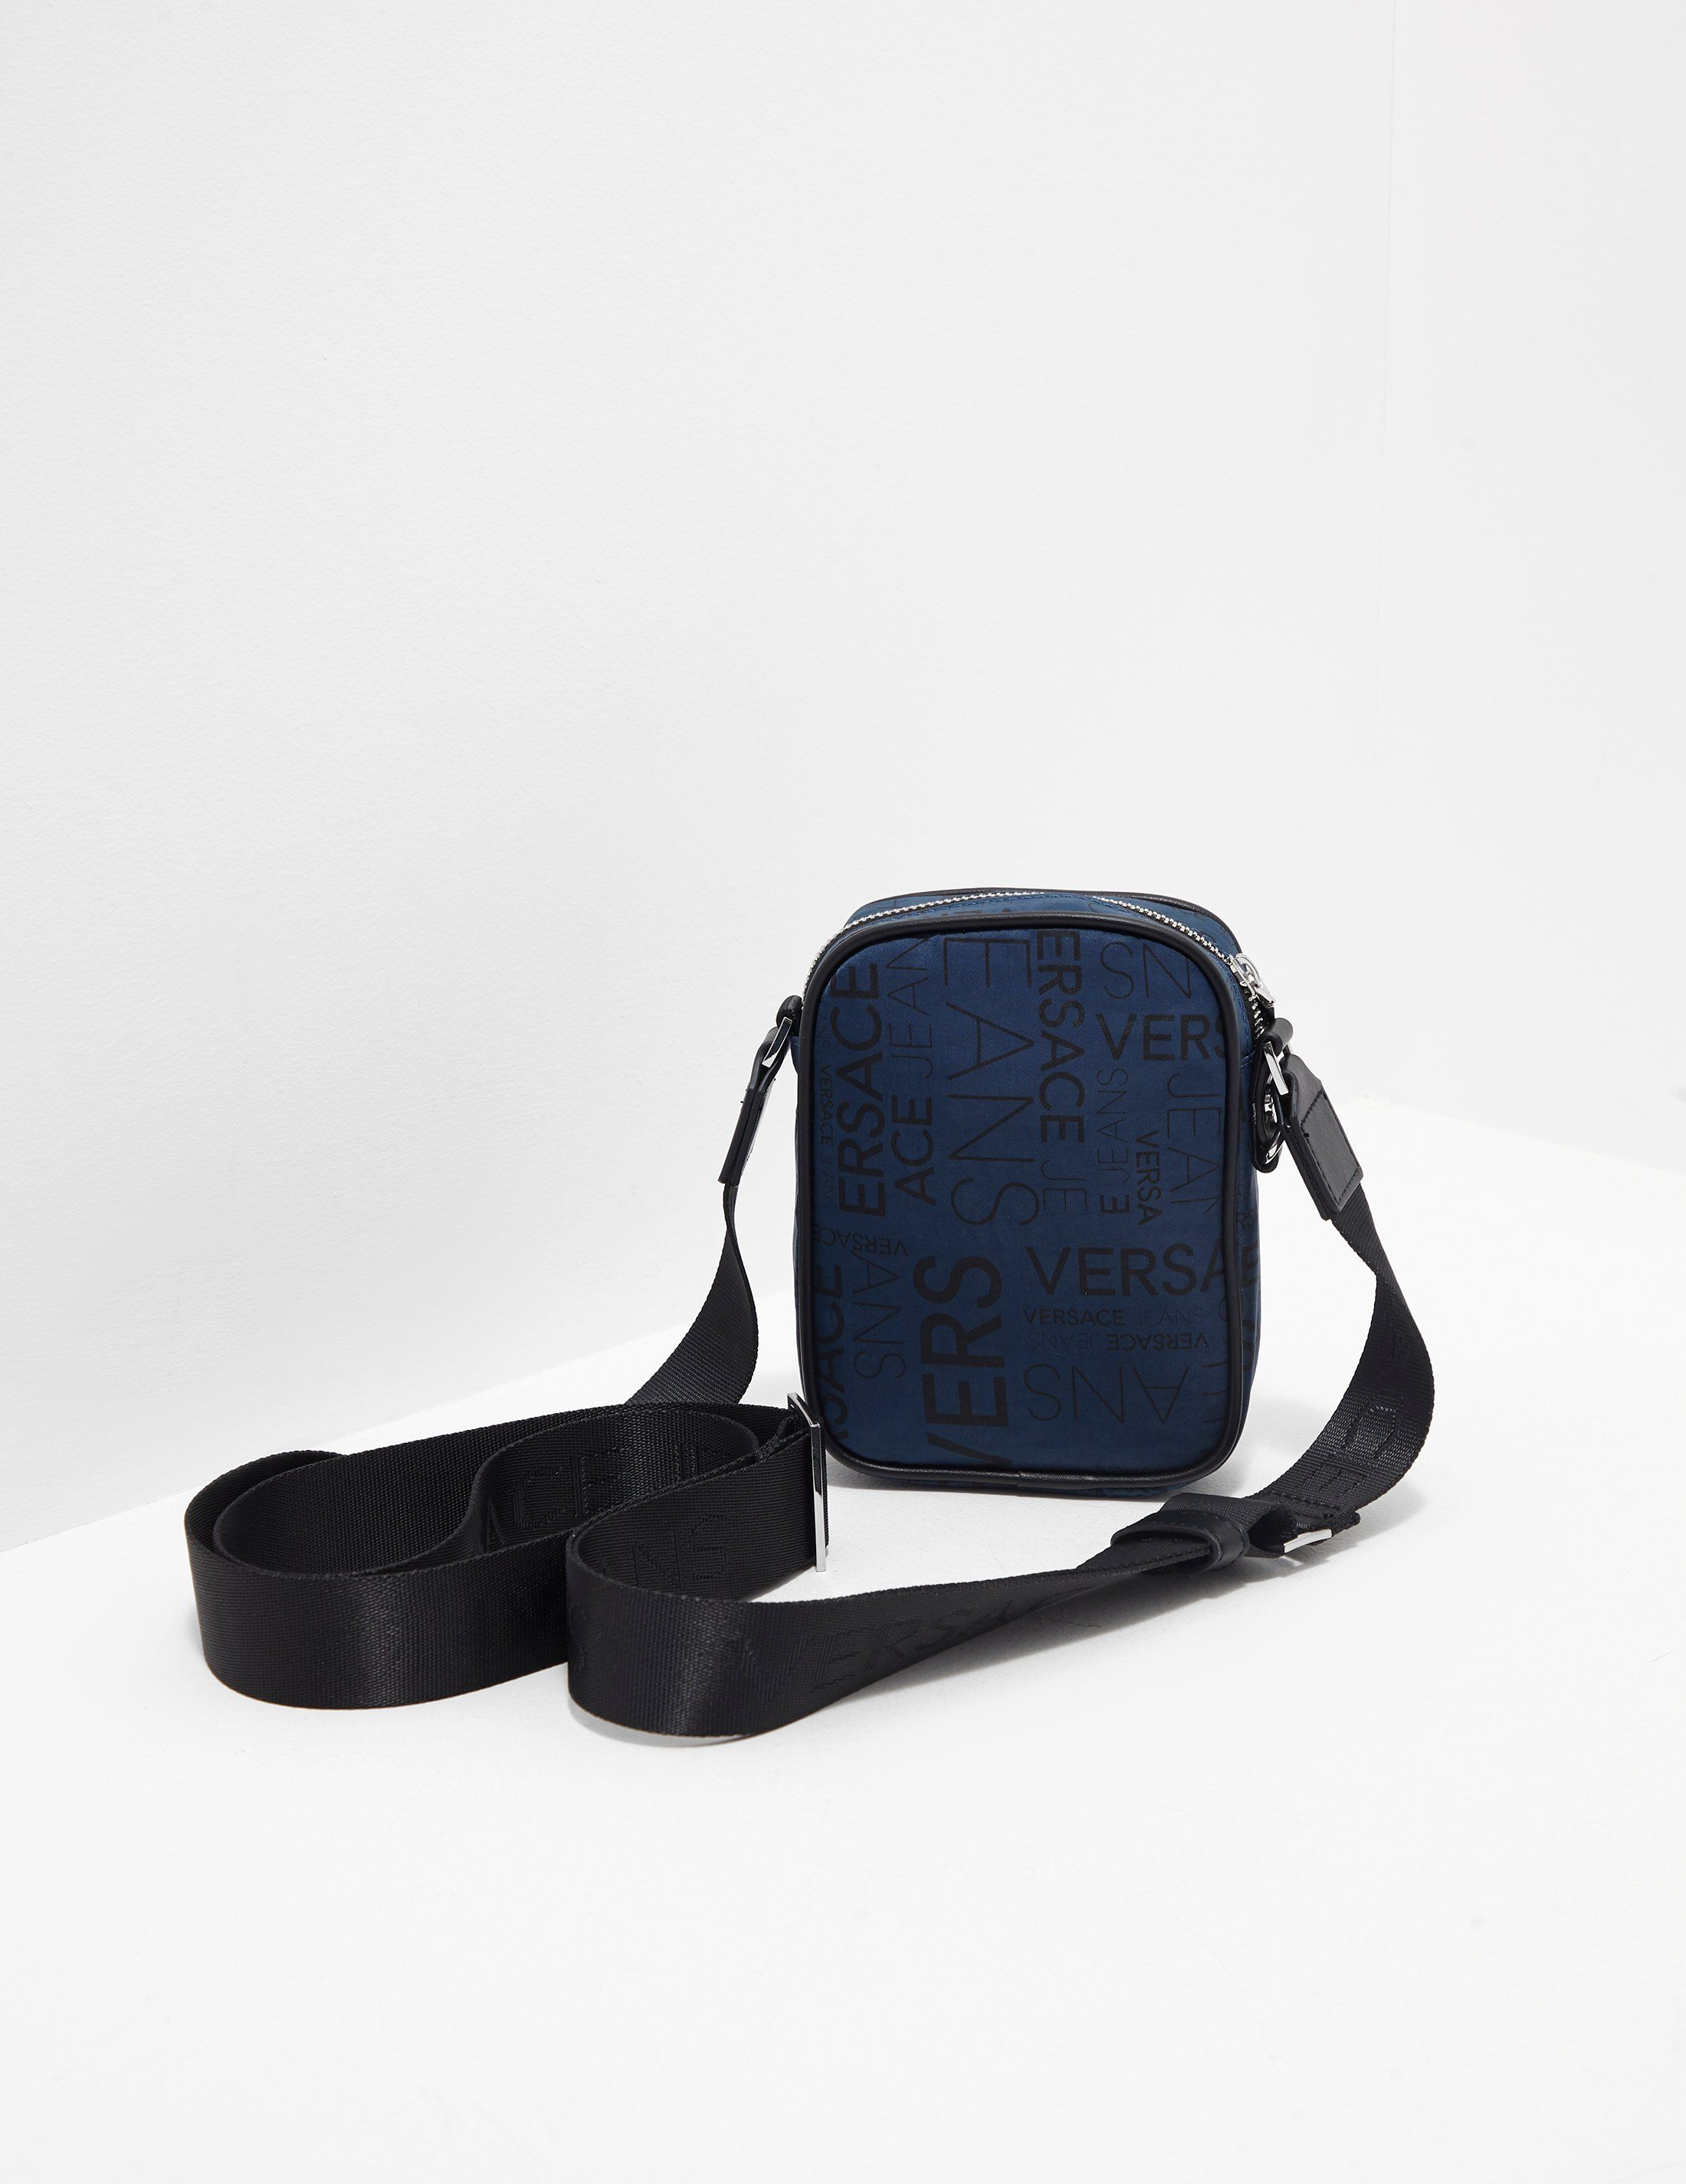 Versace Jeans All Over Logo Small Item Bag